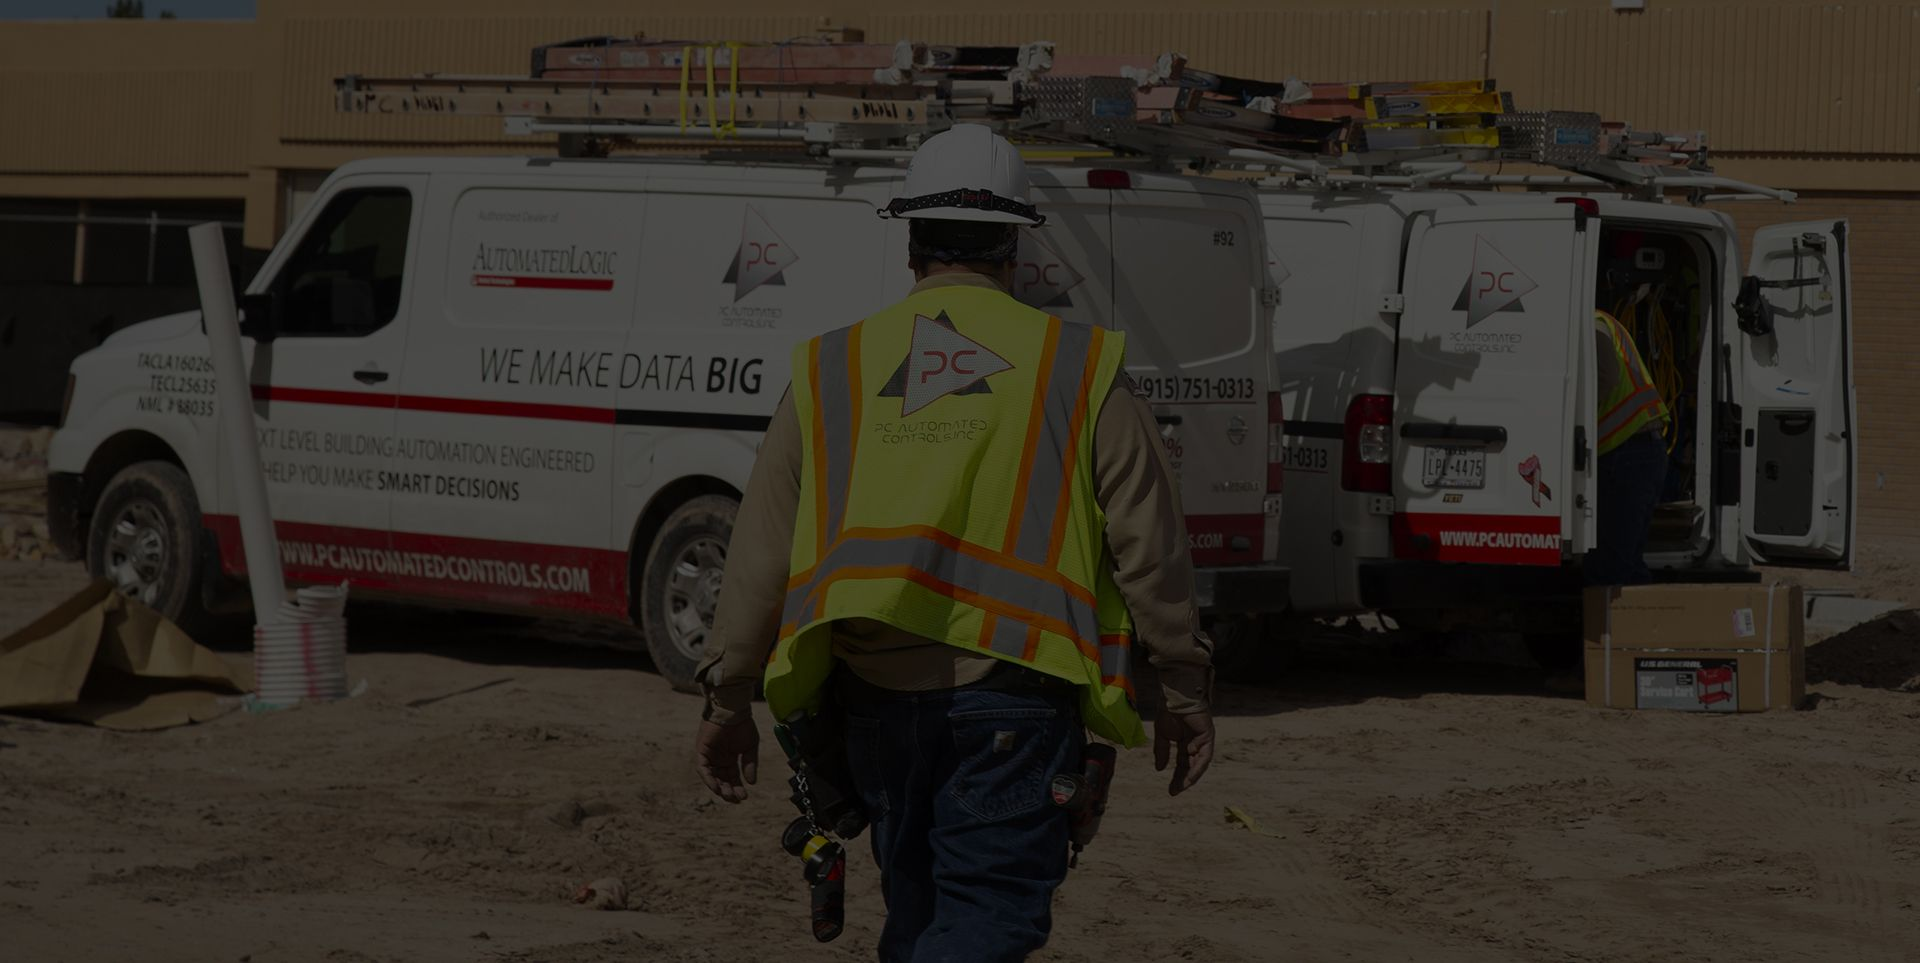 PC Automated Controls On-site Work